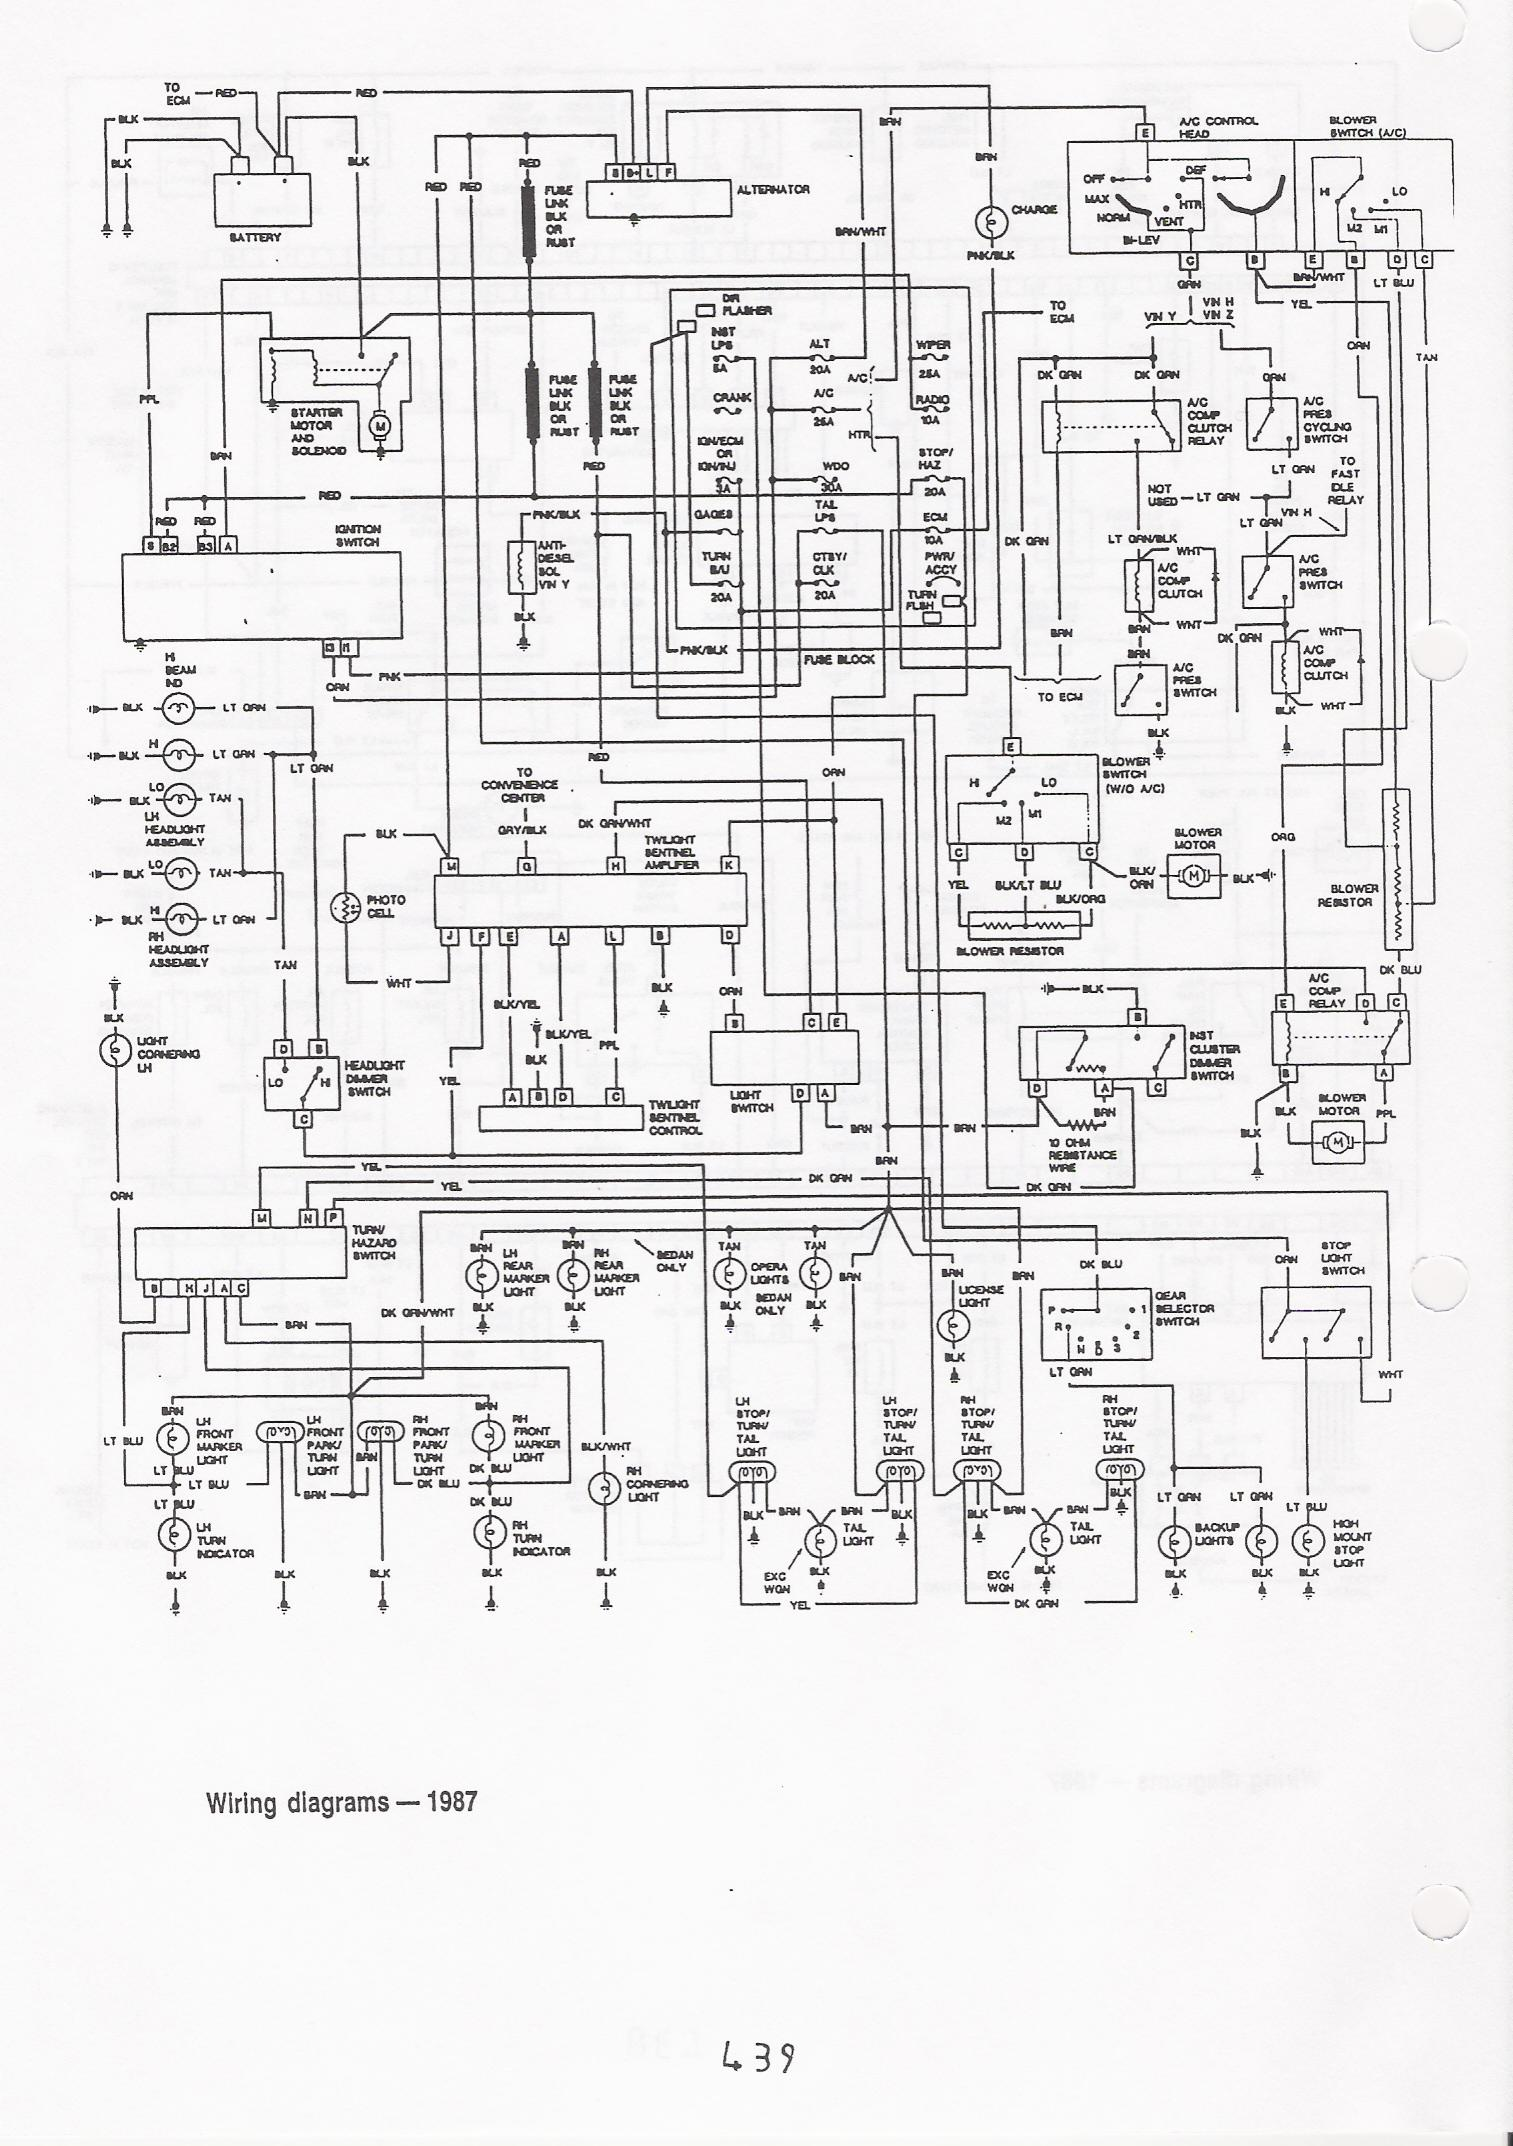 1969 Chevrolet Impala Wiring Diagram Layout Diagrams Chevy Horn Nova Exhaust Systems 1968 Camaro Corvette Radio